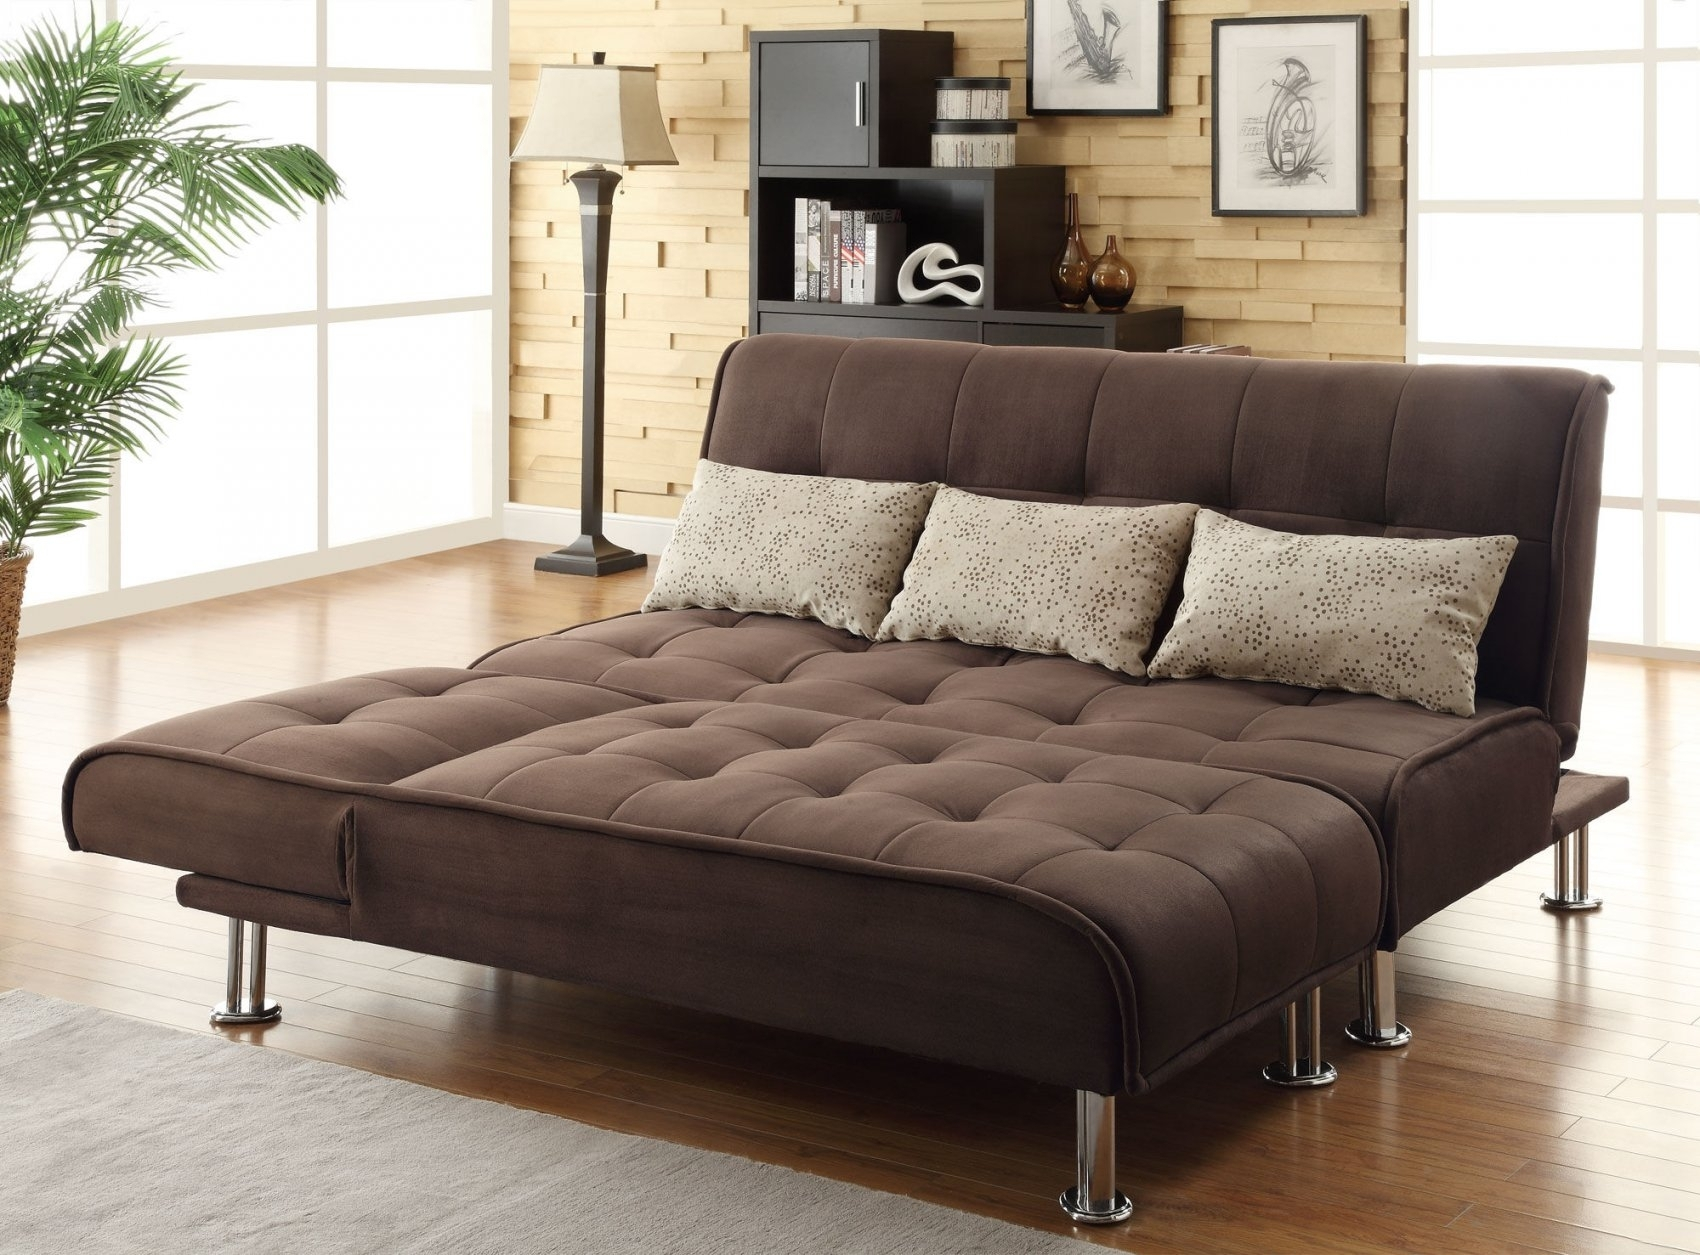 Queen Size Sofa Sleeper Best Living Room Decorating With Regard To intended for Queen Size Sofas